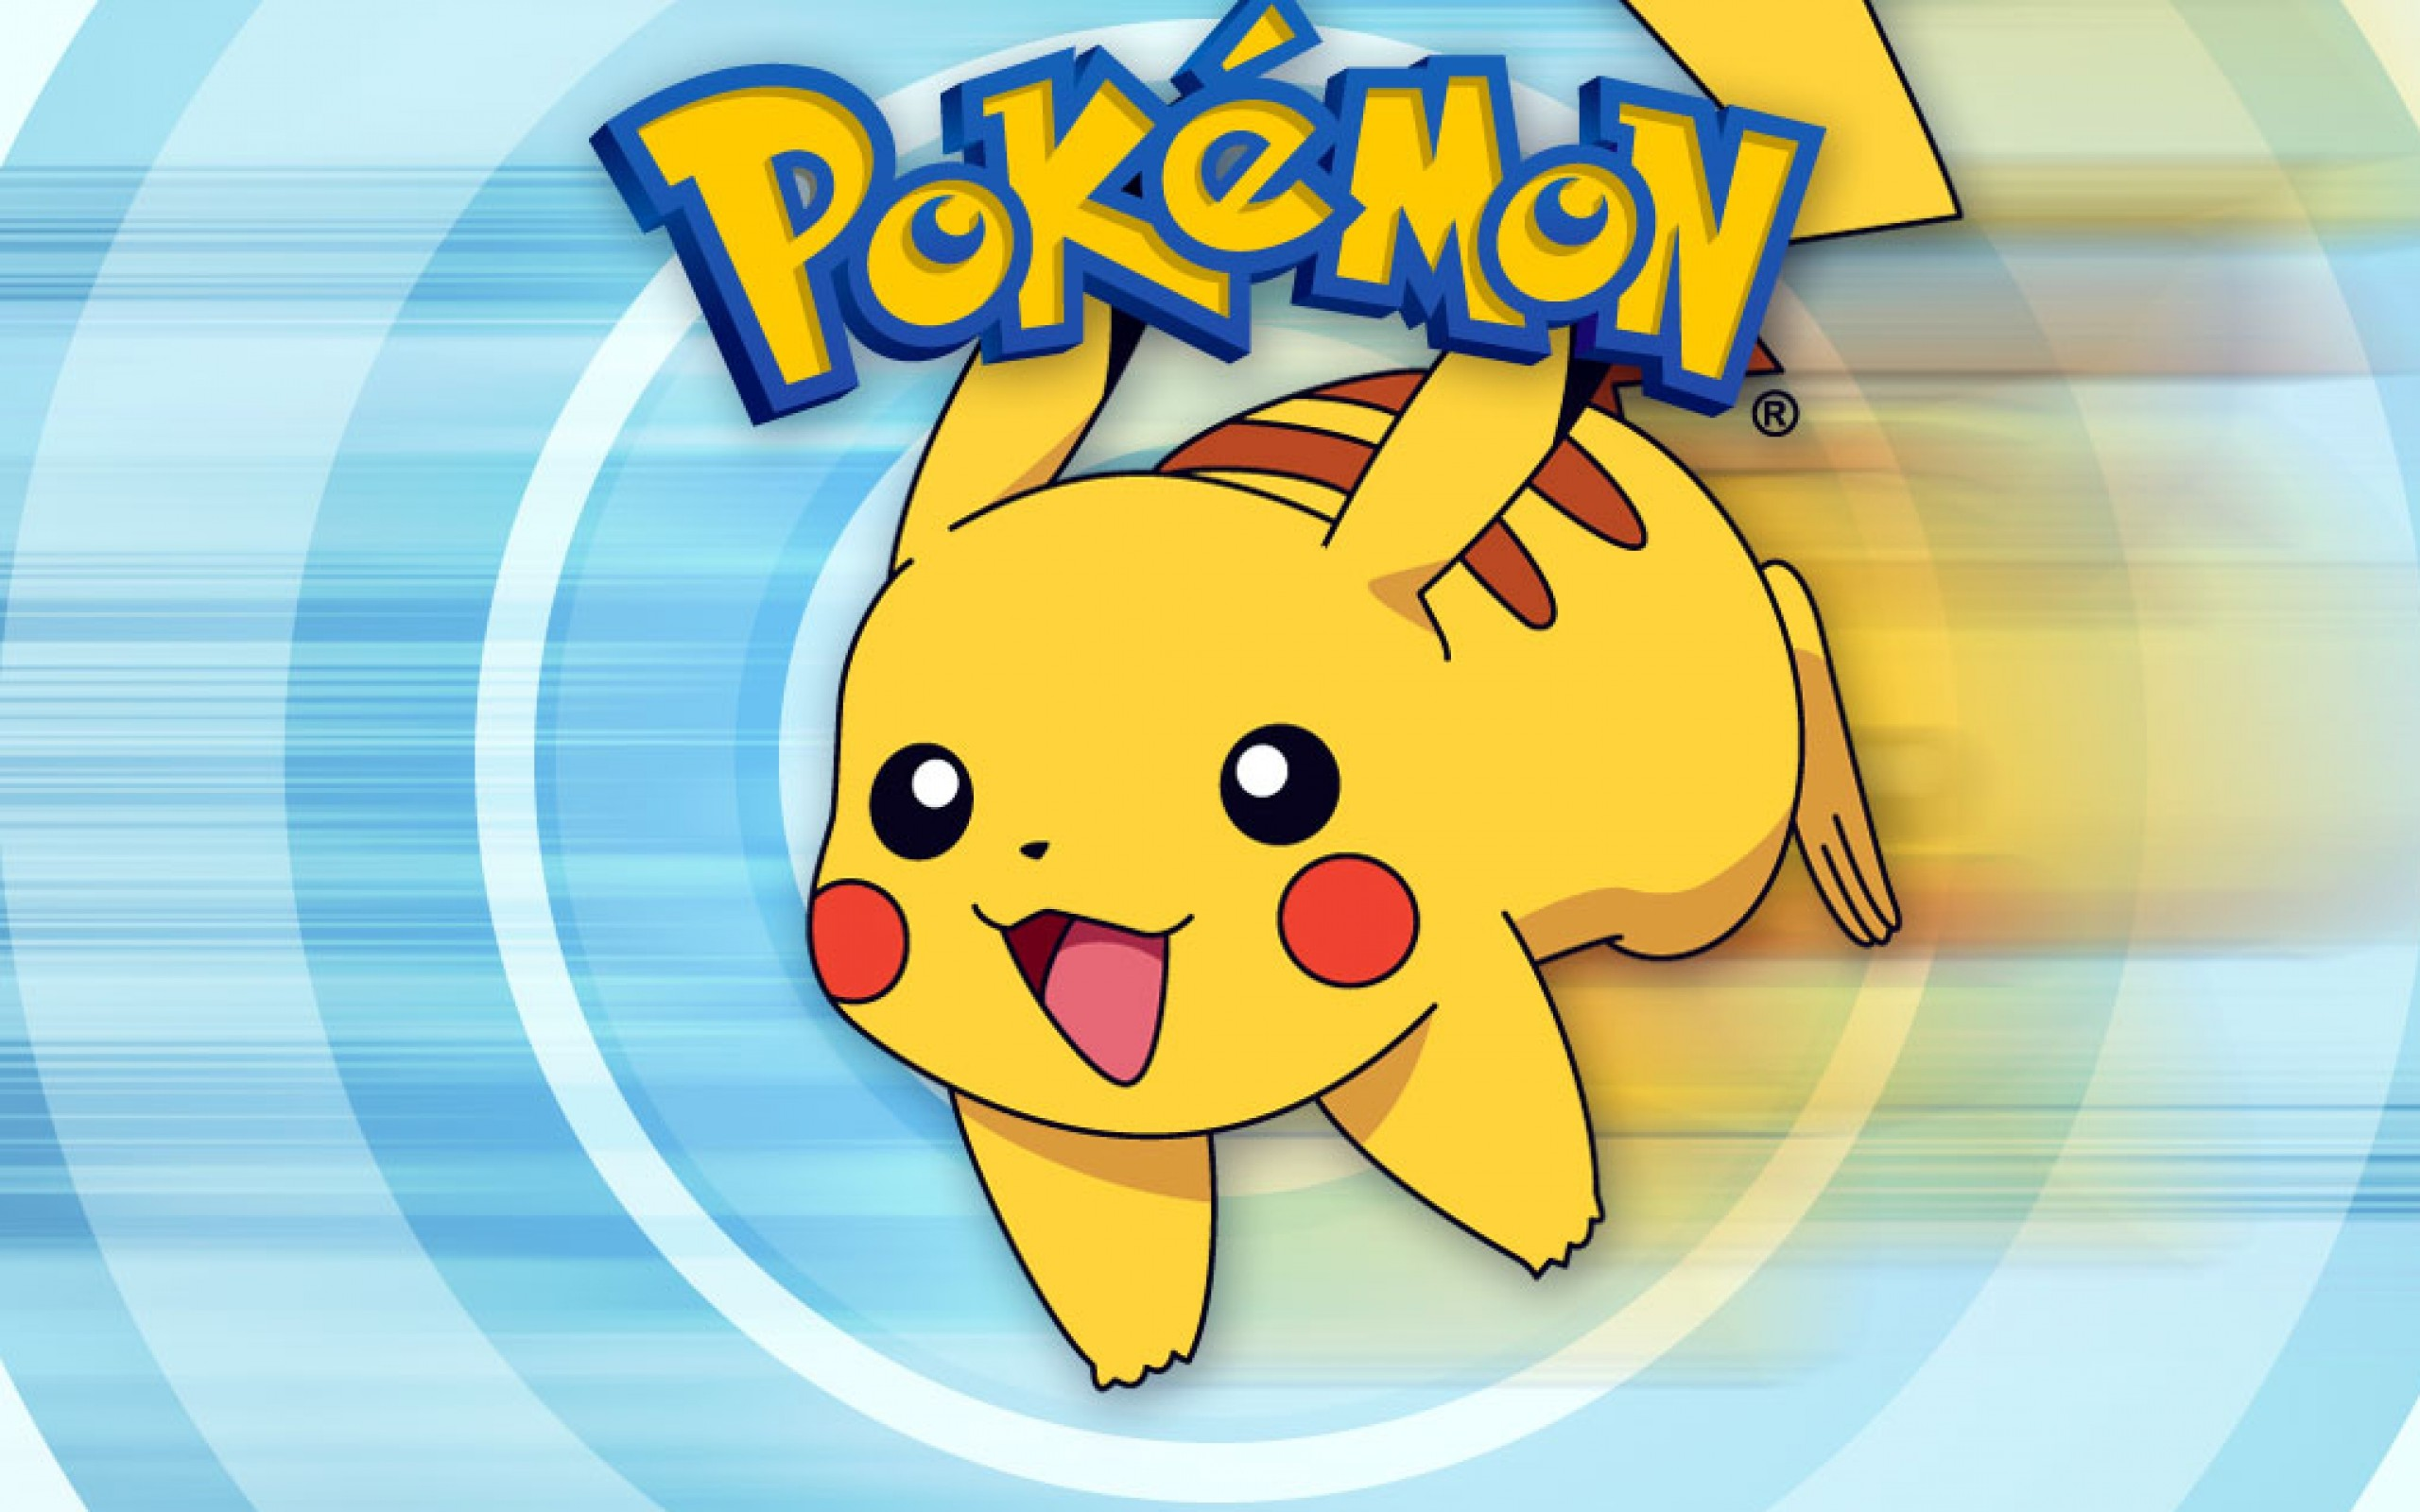 2560x1600 0 Pikachu Wallpapers Pikachu Wallpapers HD PixelsTalk.N